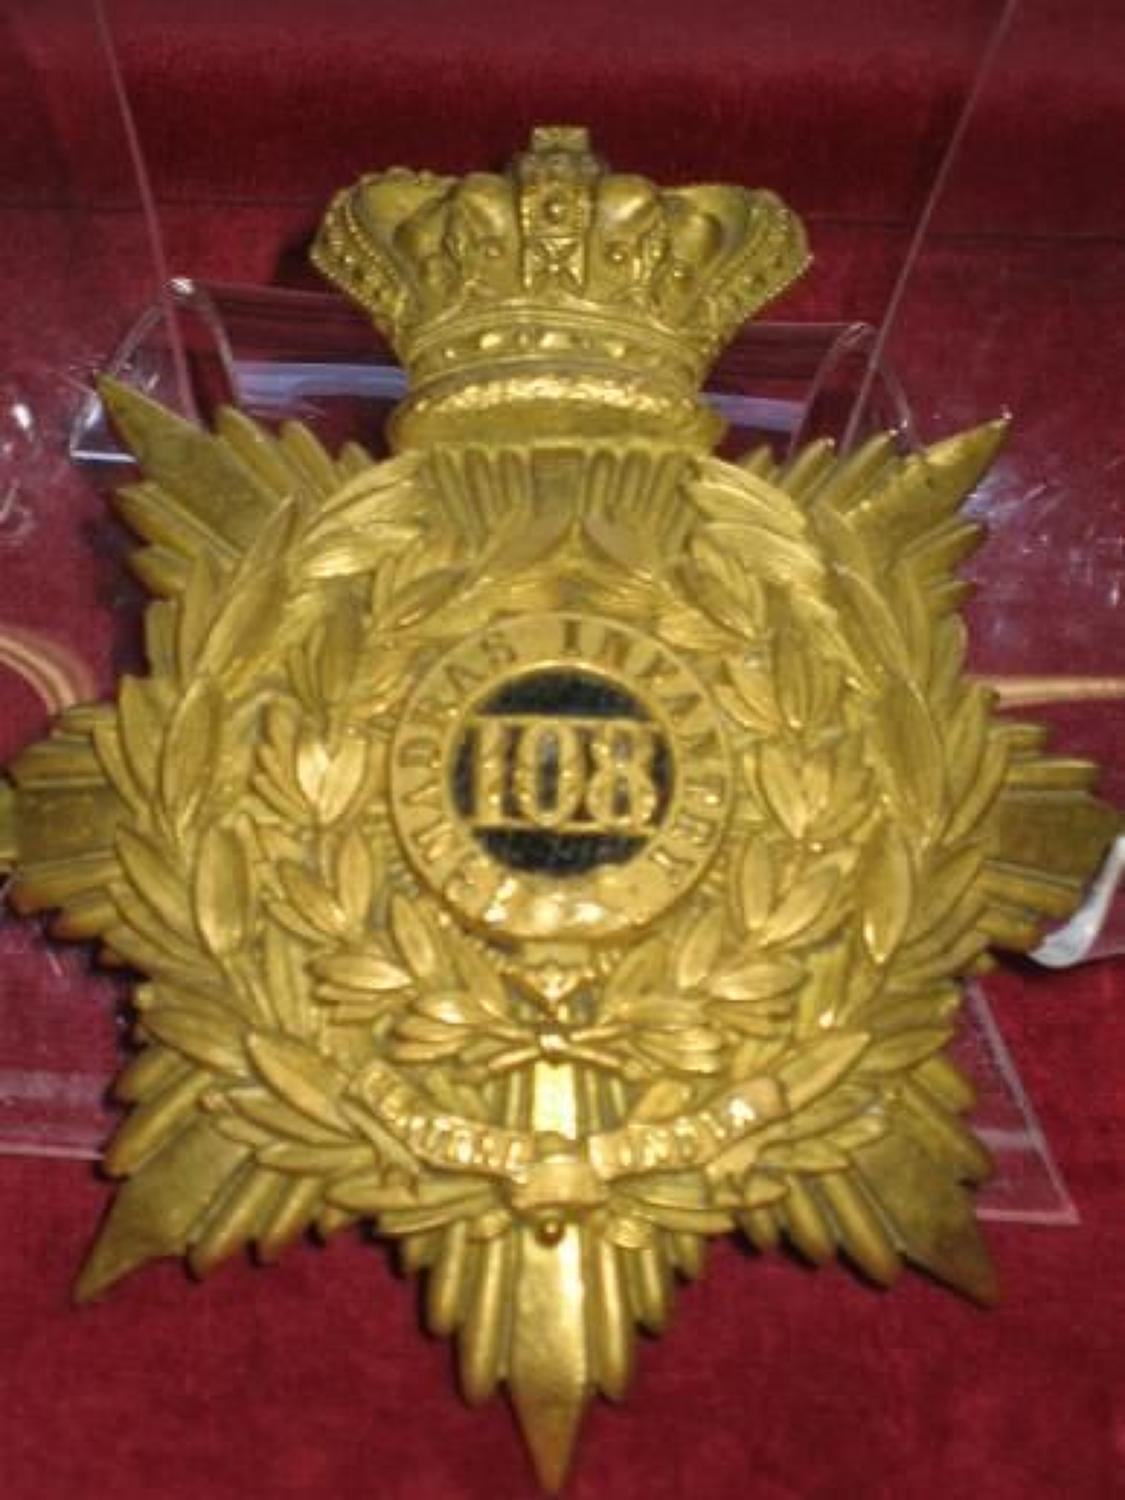 108th (Madras Infantry) Foot Regiment, Officers 1879-81 Helmet Plate